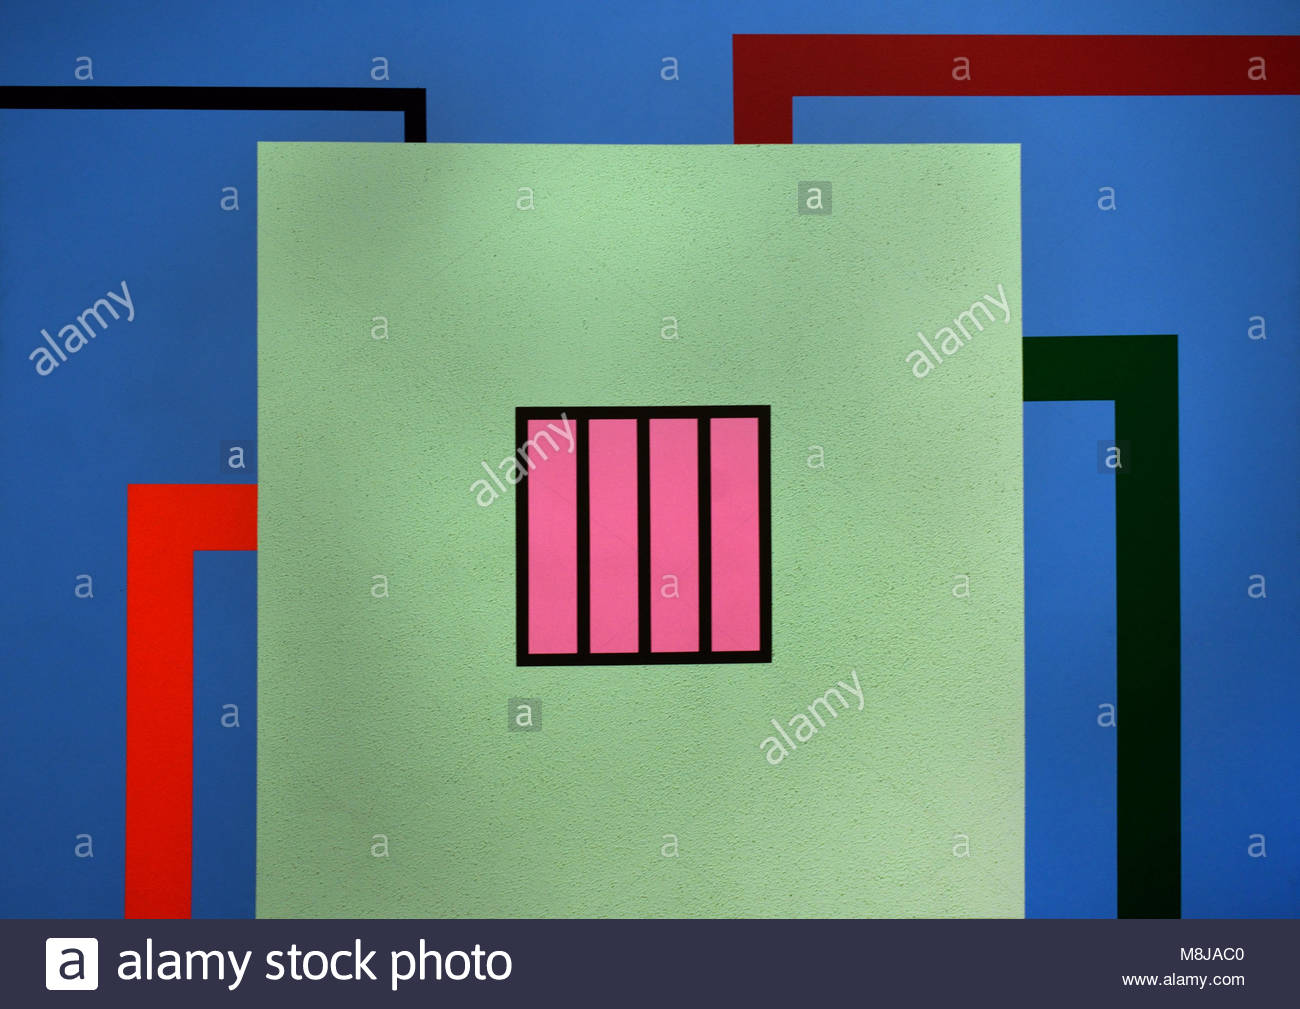 Prison 1989 by  Peter Halley 1953 American, United, States, of, America, USA, - Stock Image